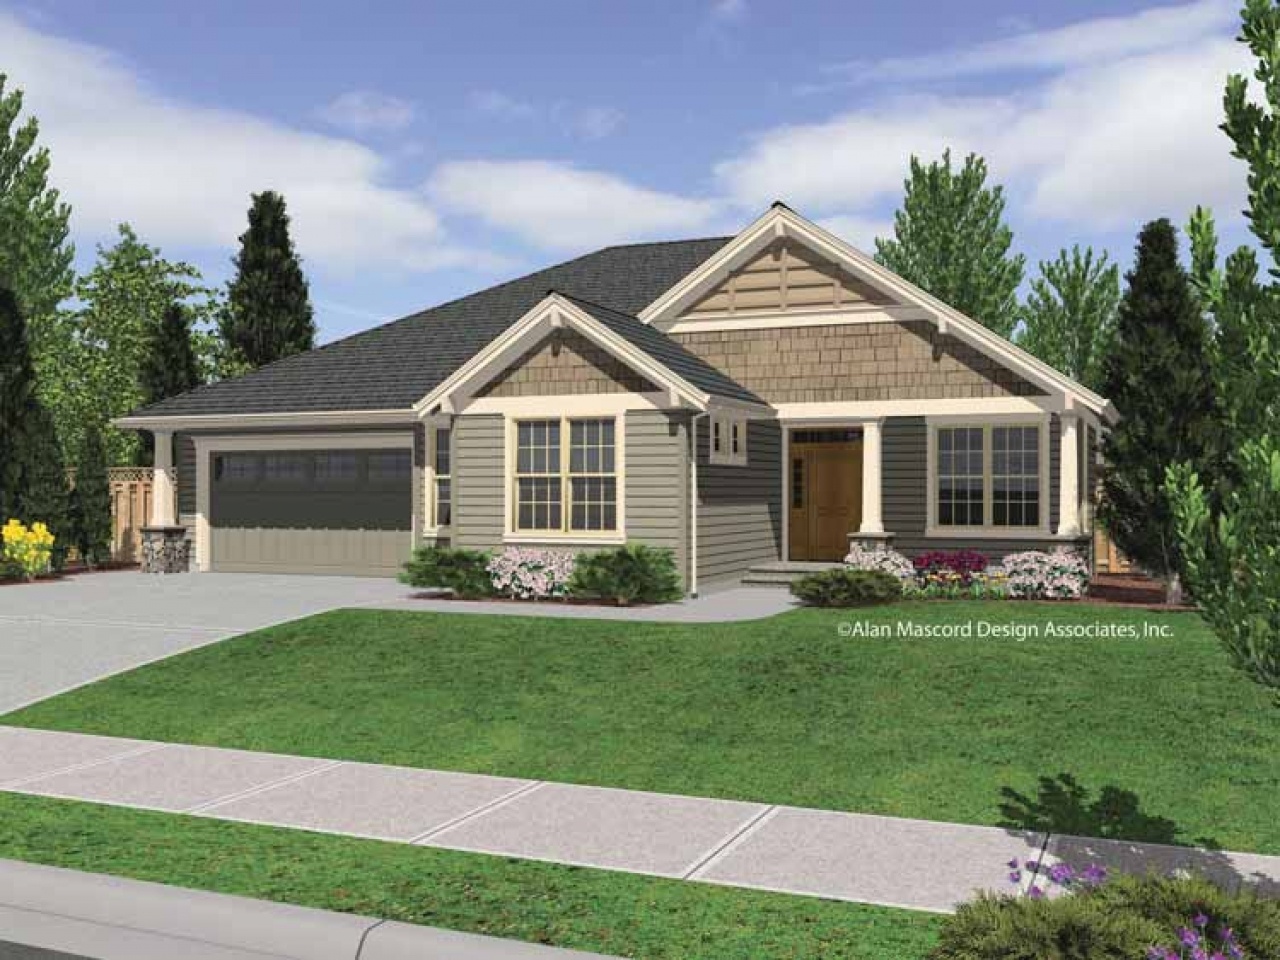 Single Story House Plans With Wrap Around Porch